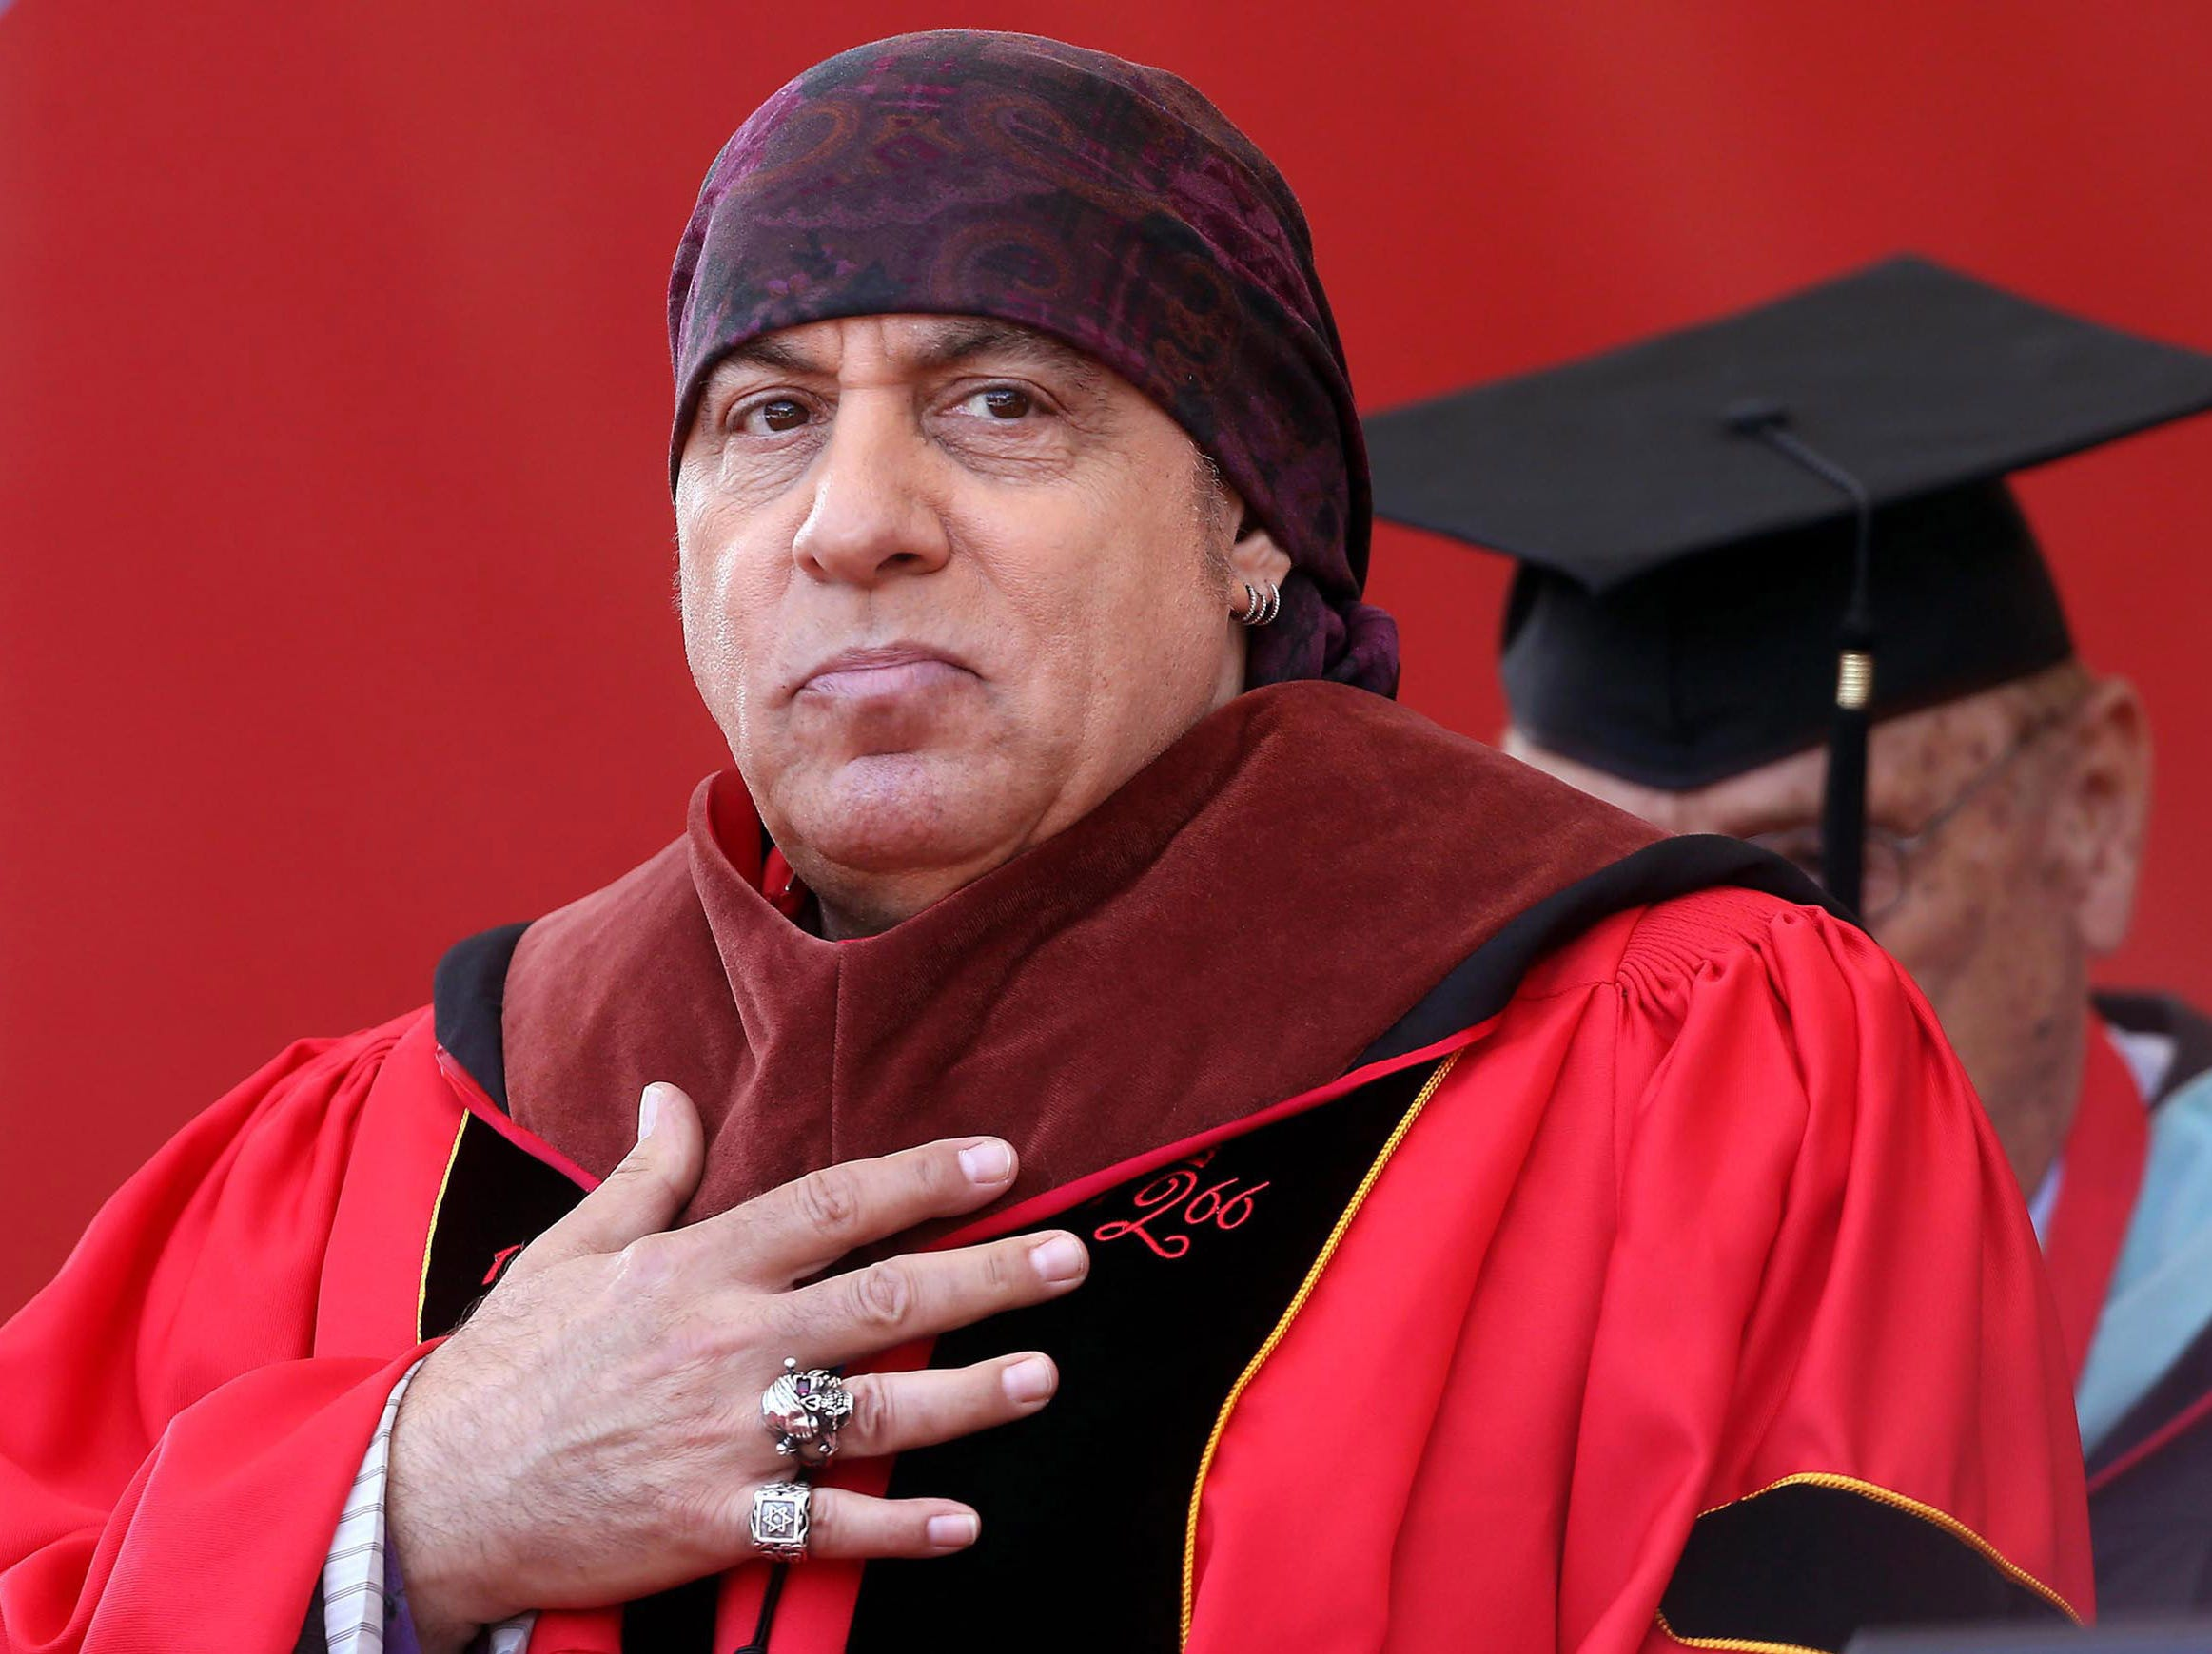 May 15, 2017--Steven Van Zandt receives his honorary Doctorate of Fine Arts hood at Rutgers University 251st Commencement held at High Point Solutions Stadium, Piscataway. The original member of the E Street Band, Van Zandt was the Keynote speaker.